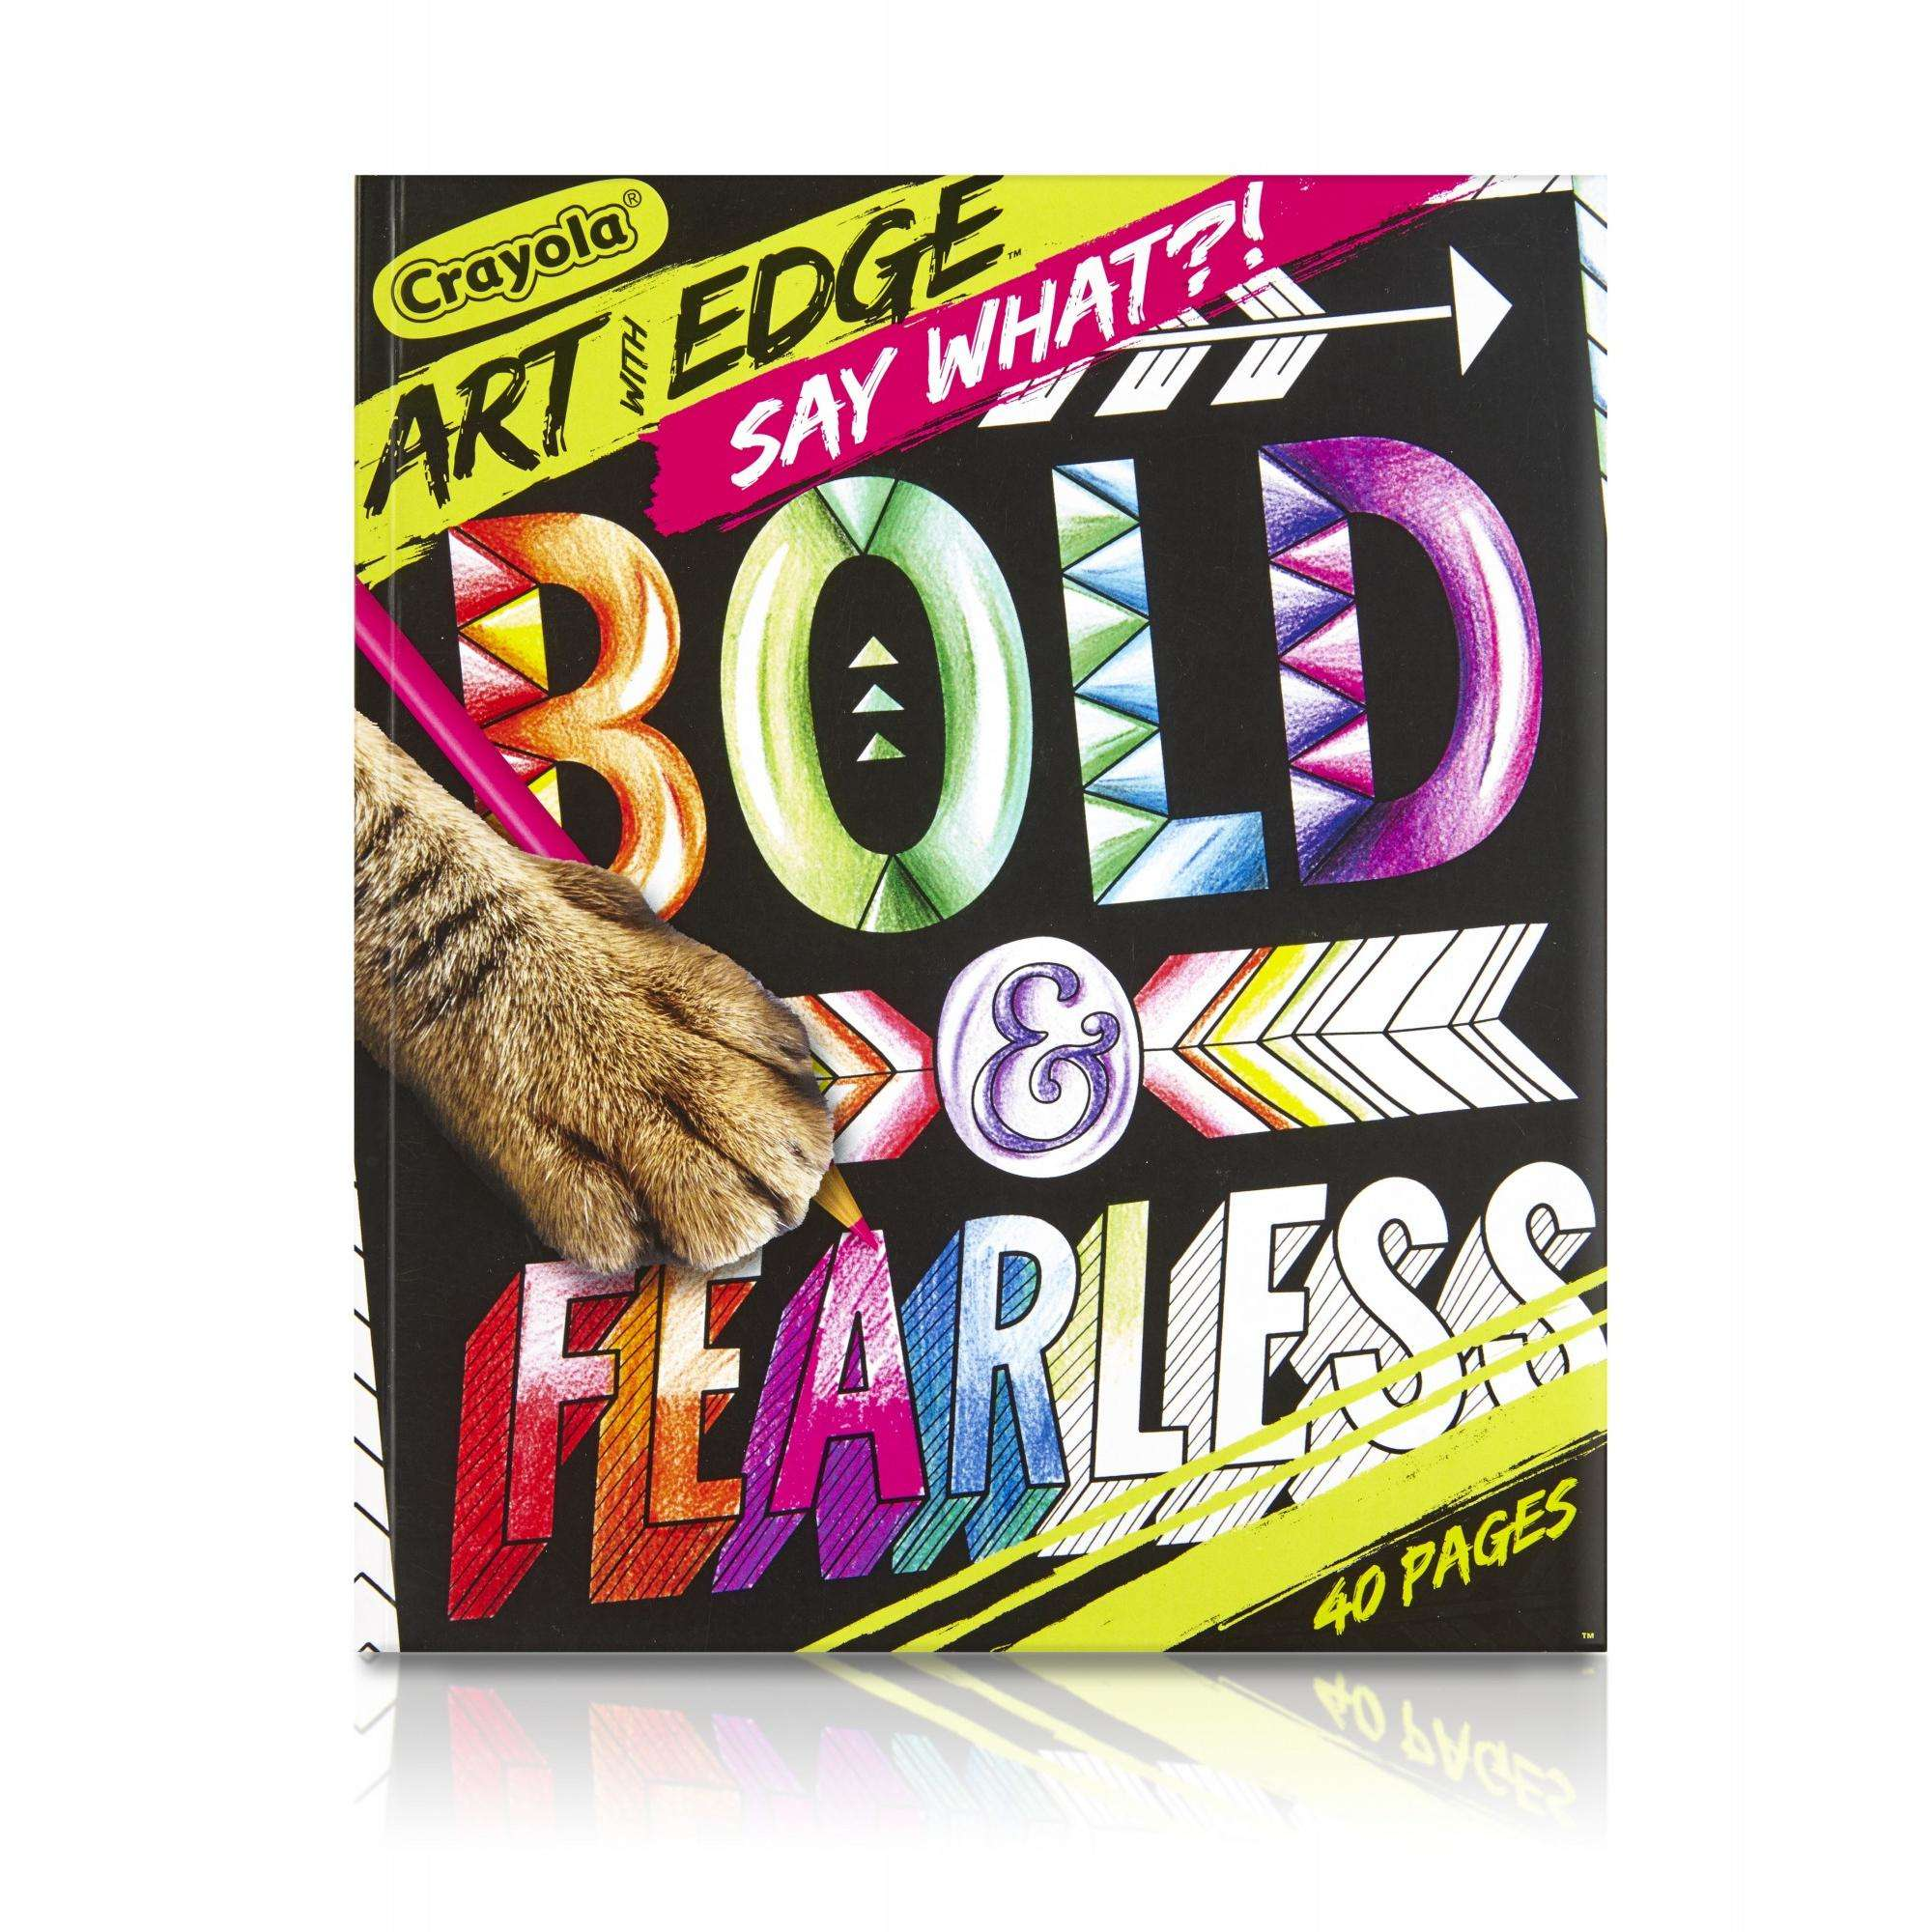 Crayola Art With Edge, Bold & Fearless,40 pages, Premium Coloring Book by Crayola.